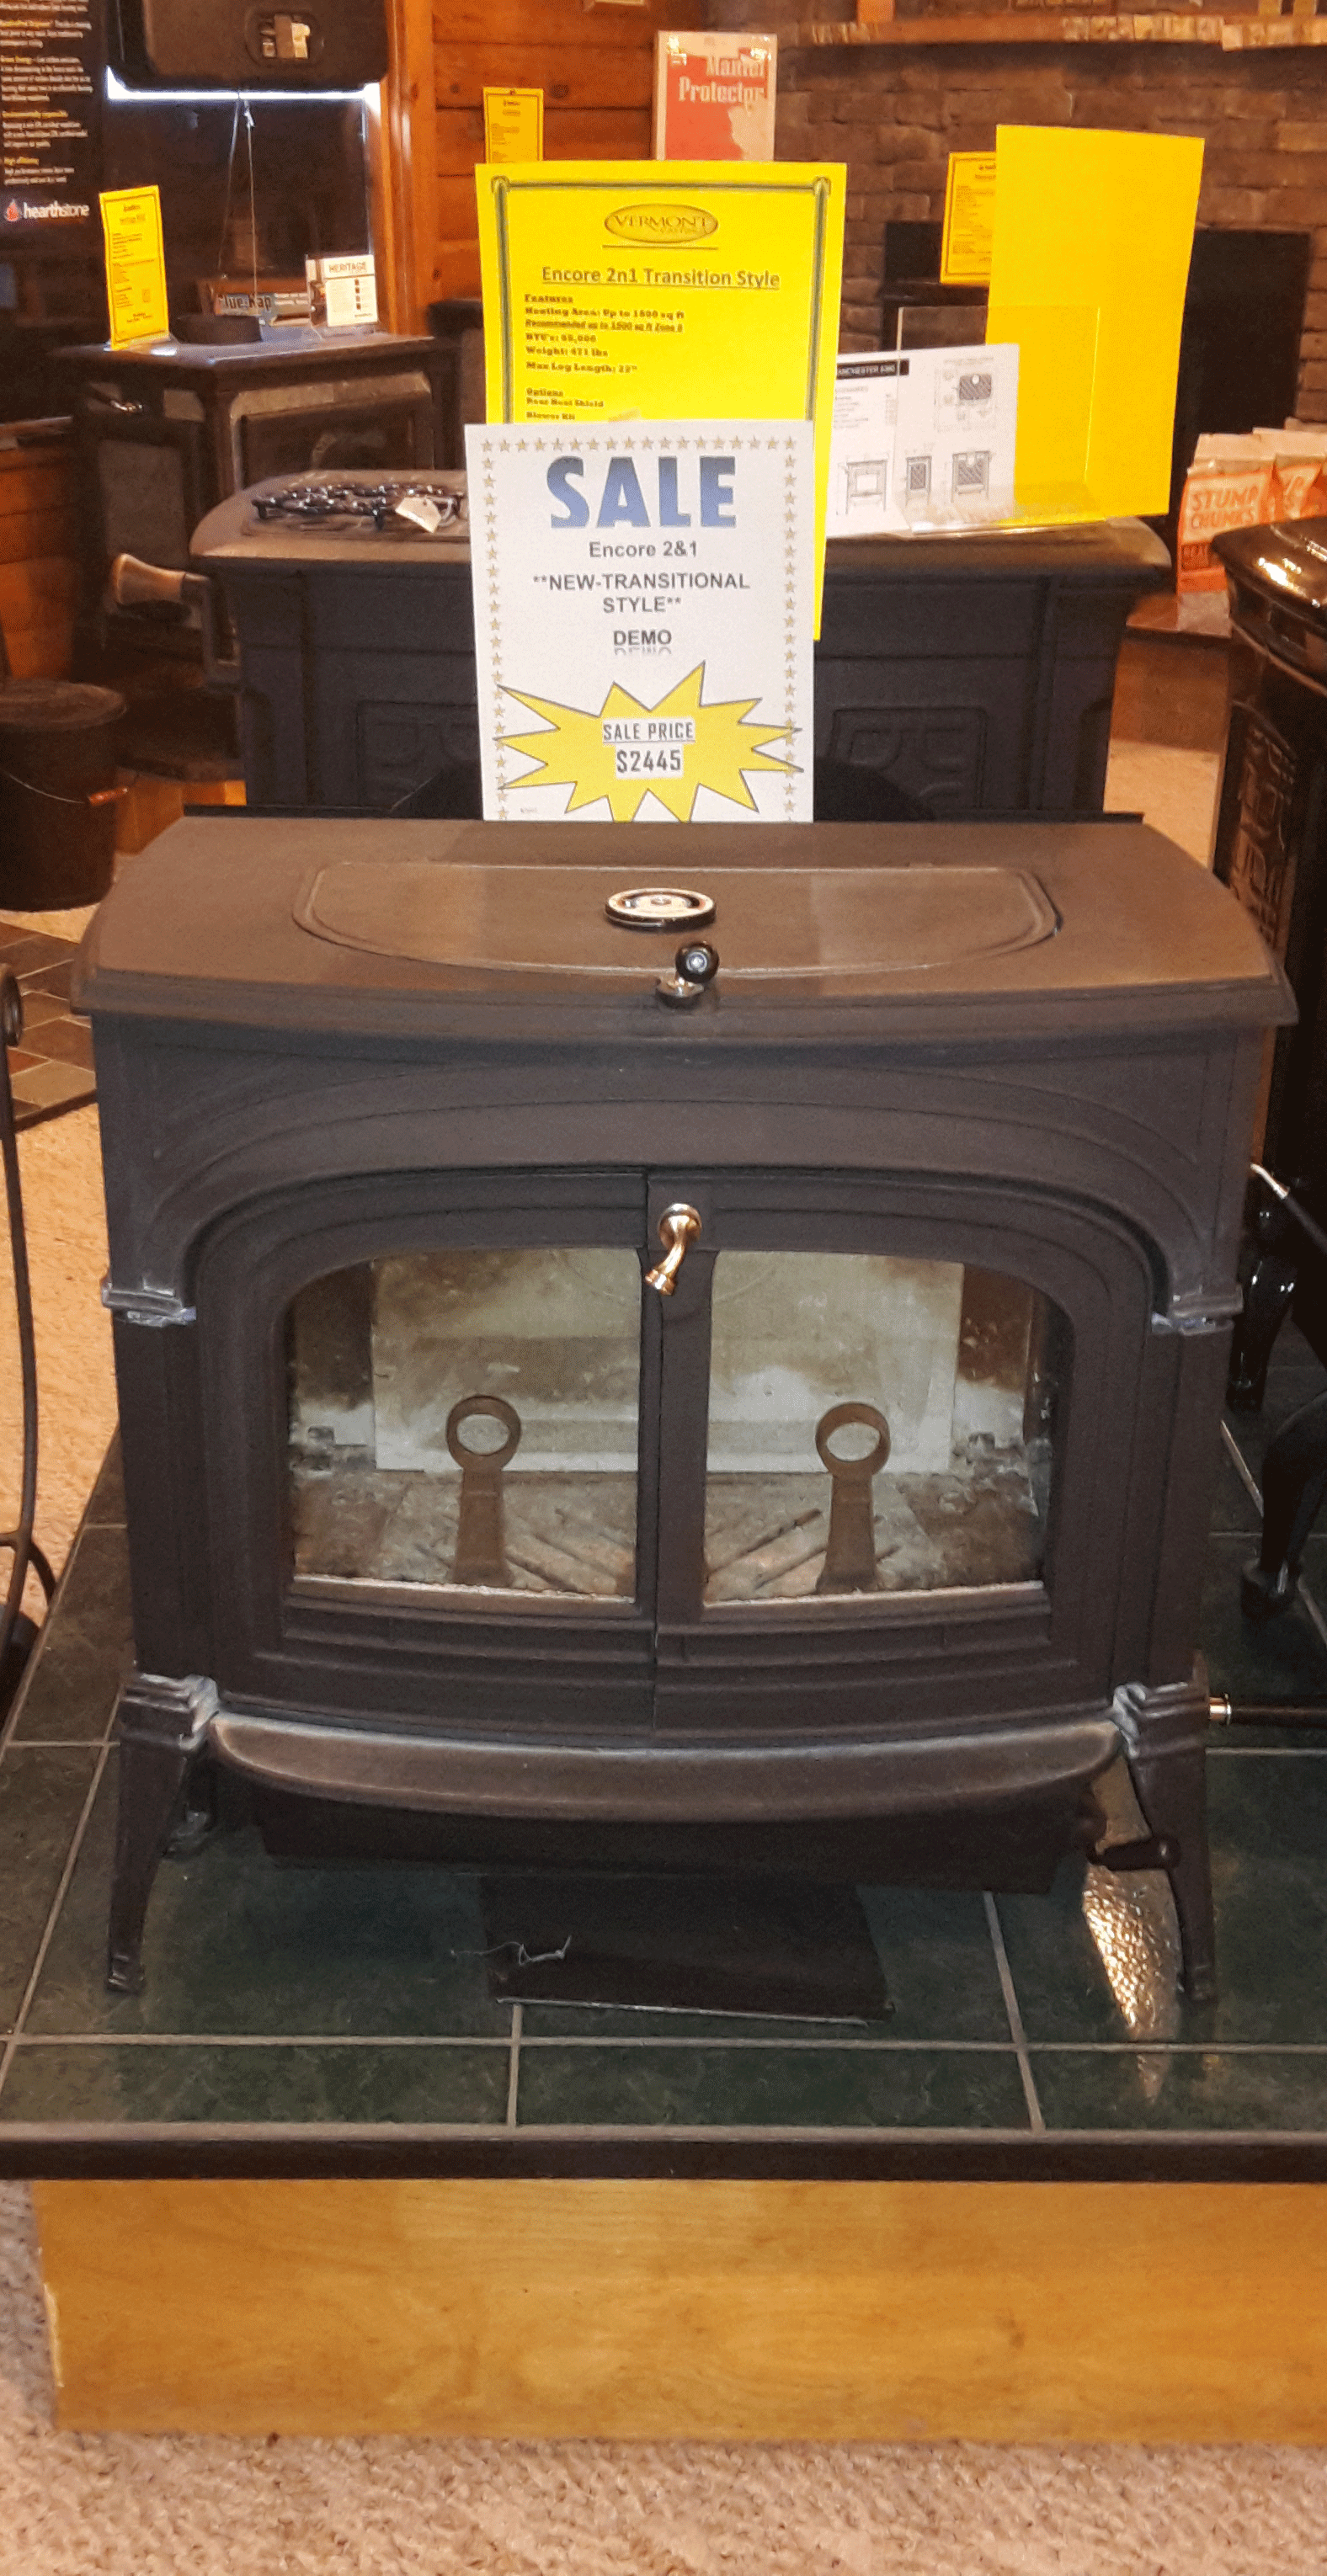 Cozy Cabin Stove & Fireplace Shop - Wood Stoves